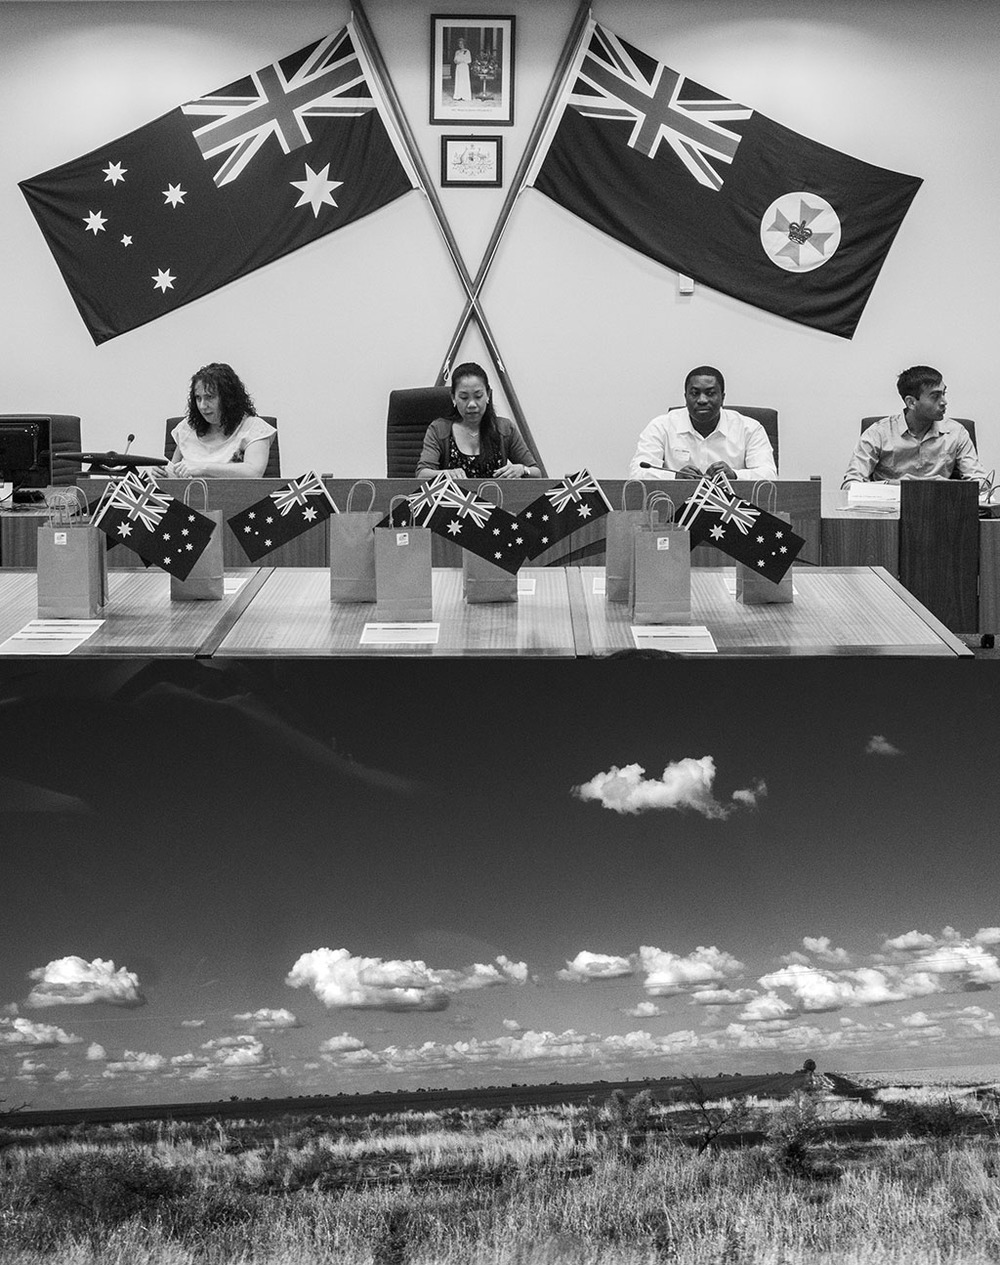 'Change is in the air' (New Australian citizens at a citizenship ceremony in Emerald and the landscape between Springsure and Emerald, Qld). 8 September 2015.